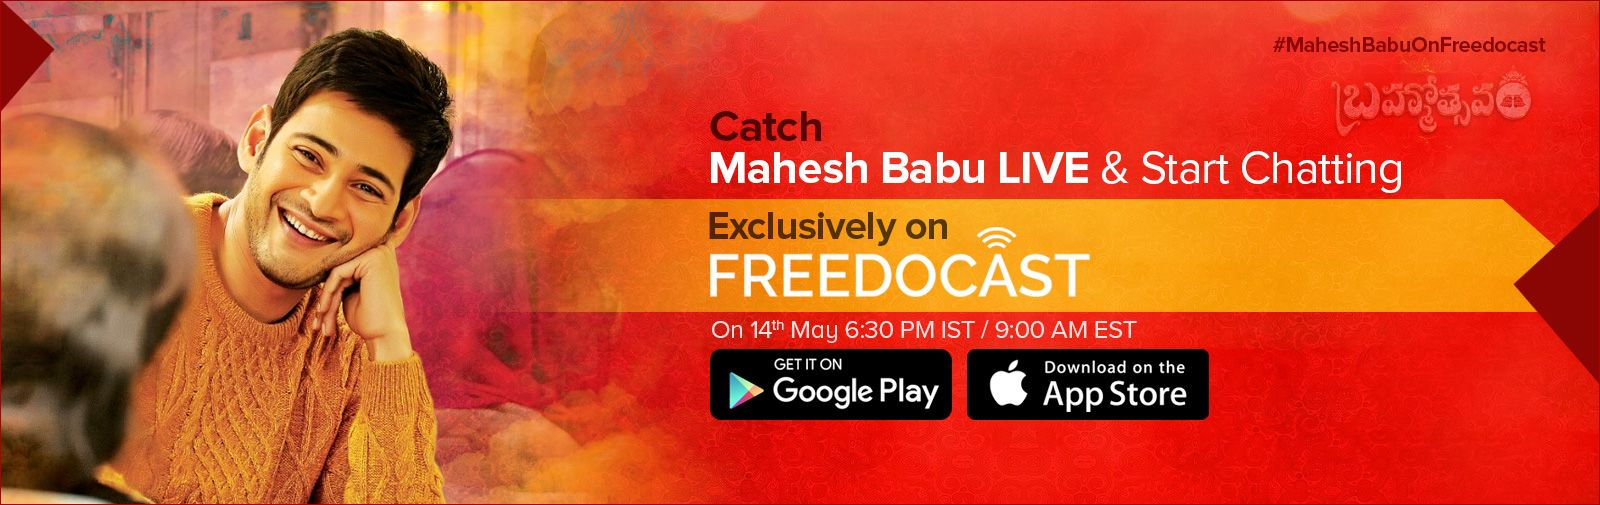 Live chat with super star maheshbabu on freedocast telugu tv